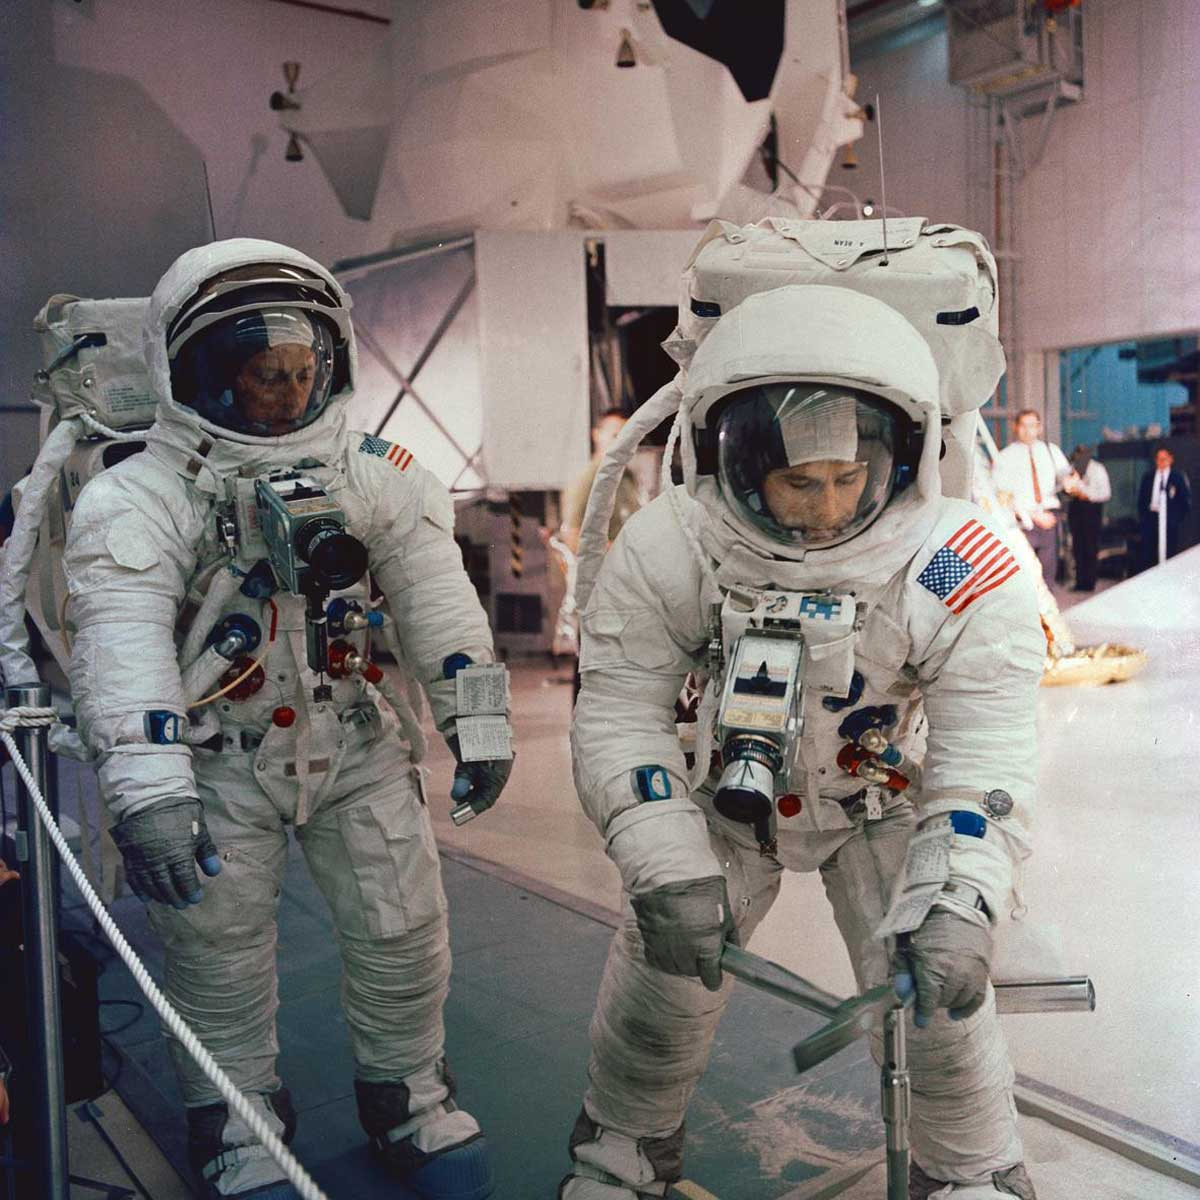 Gordon (left) and Bean (right) during training for the Apollo 12 mission. Speedmaster in view on his wrist